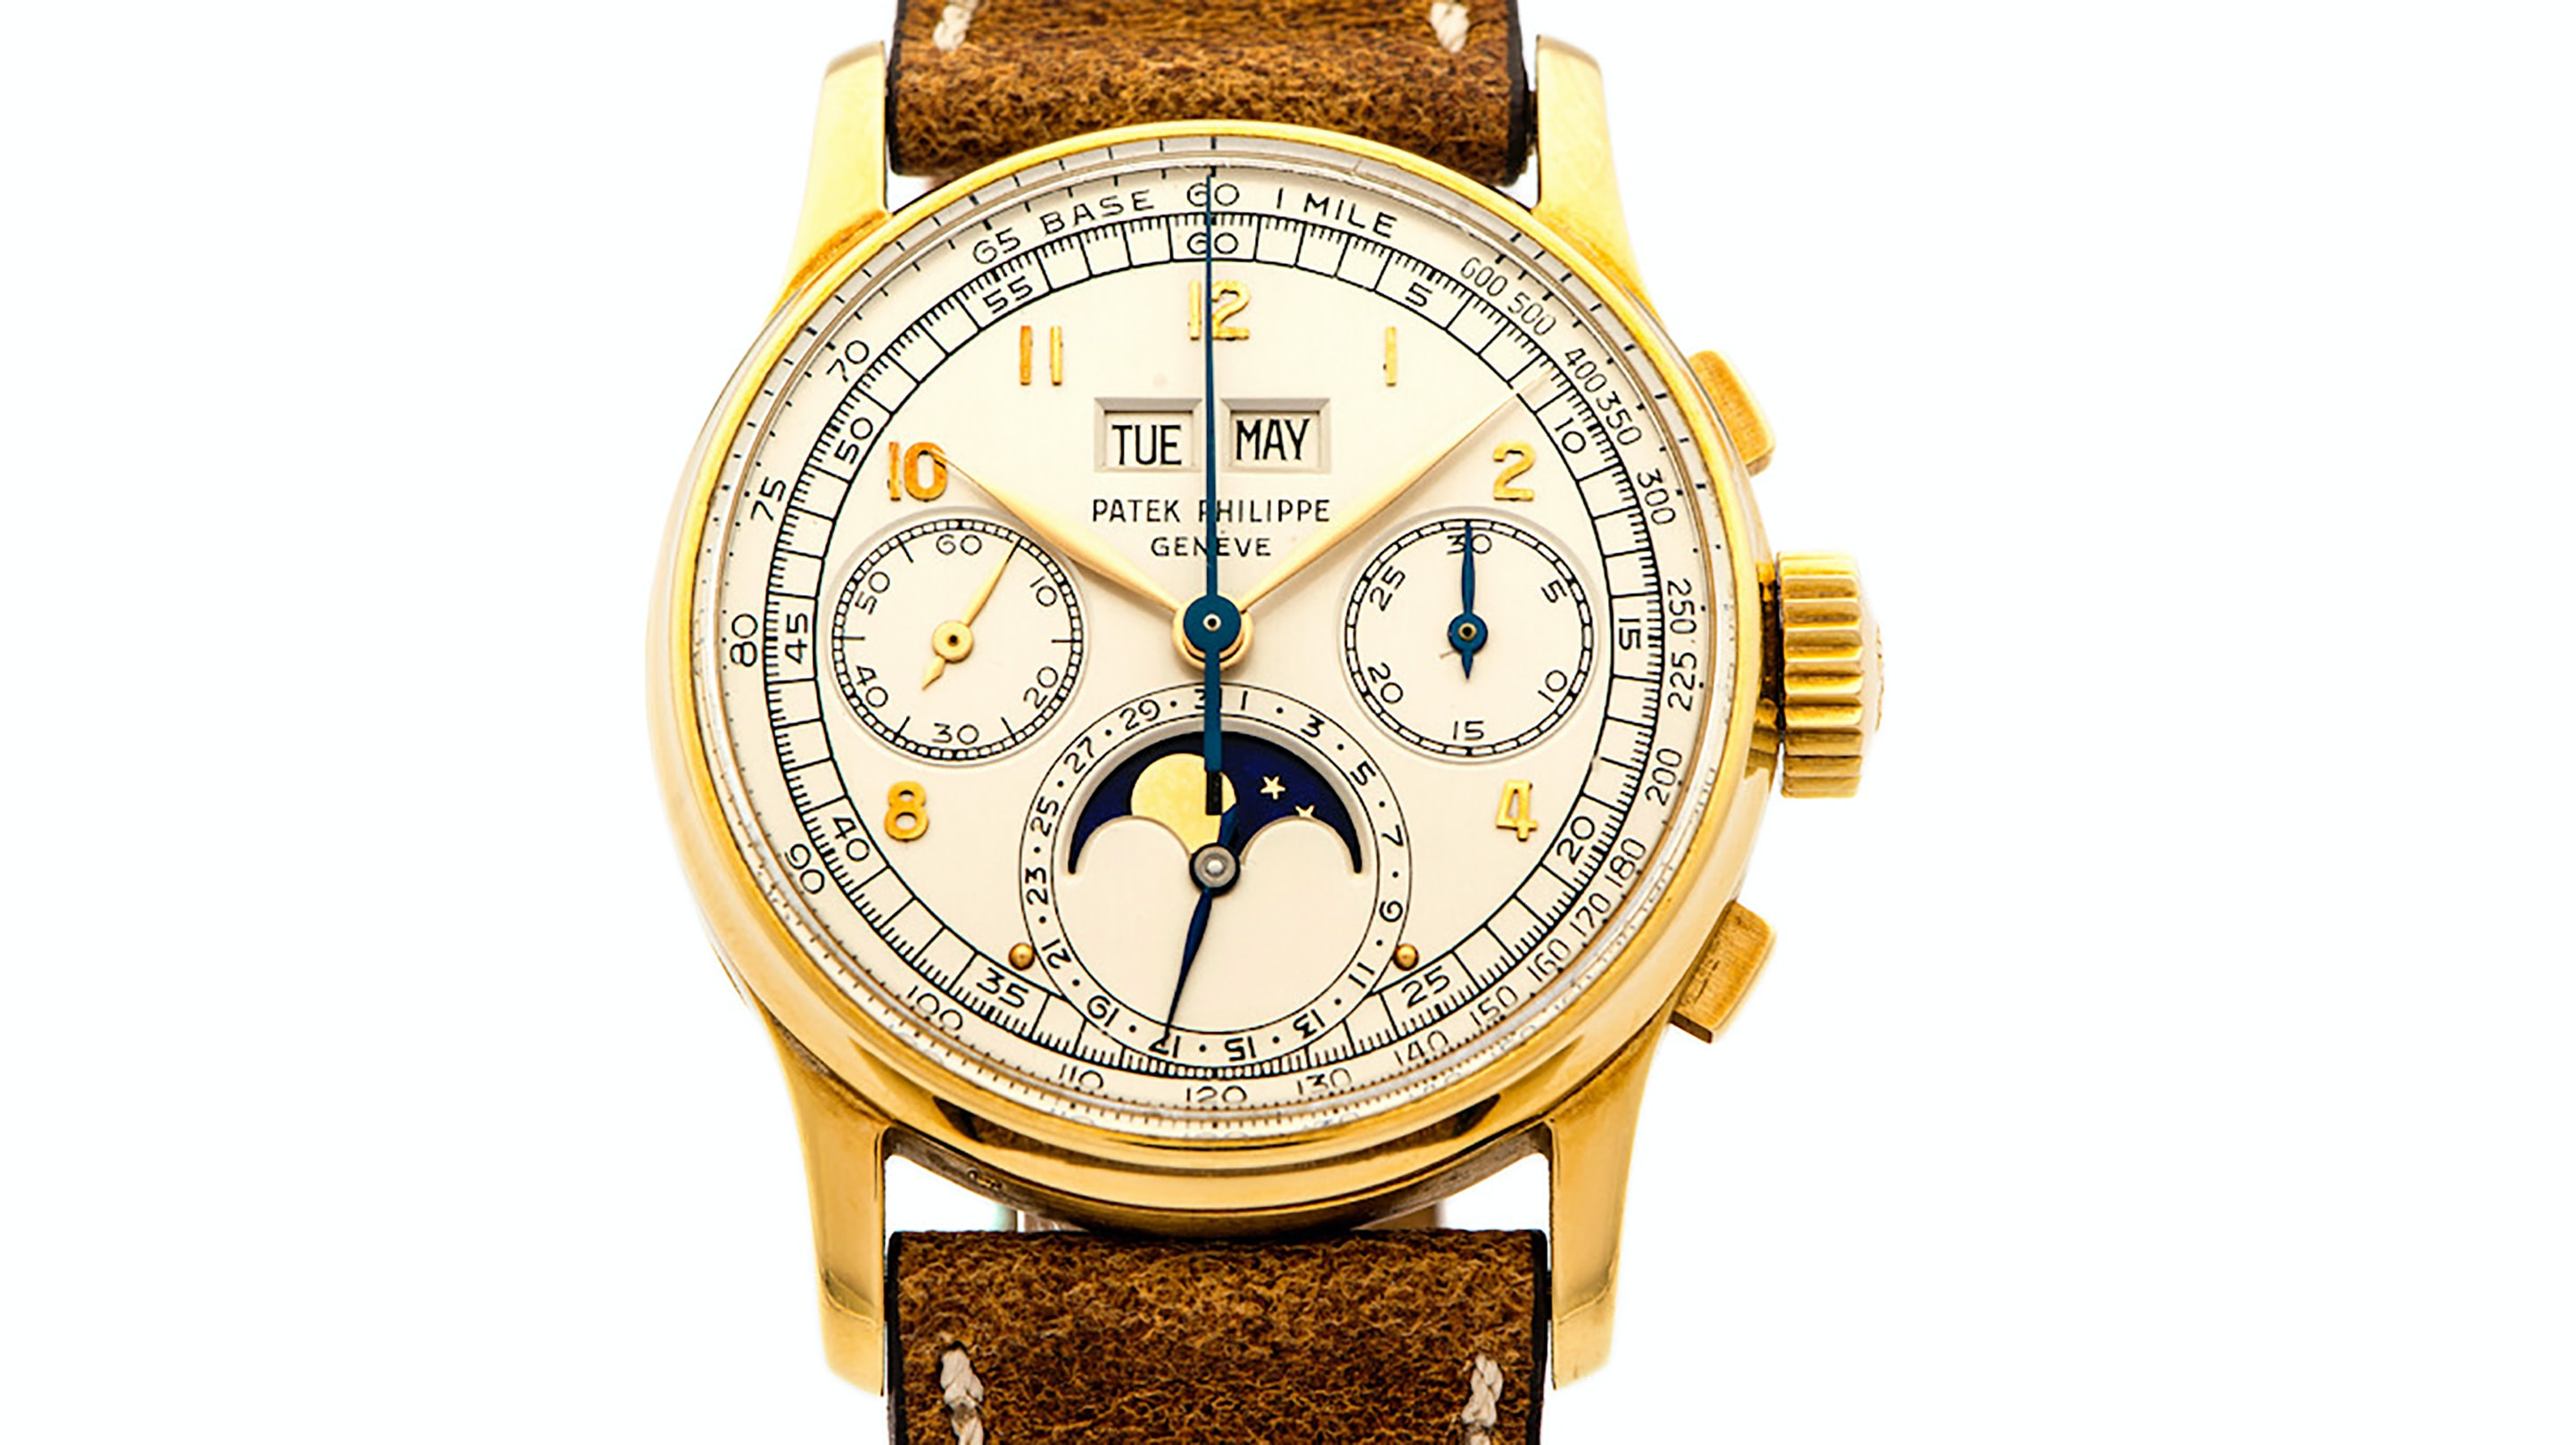 Psa hero.jpg?ixlib=rails 1.1 Watch Collector PSA: A Very Rare Patek Philippe 1518 In Yellow Gold Has Been Stolen (Please Share) Watch Collector PSA: A Very Rare Patek Philippe 1518 In Yellow Gold Has Been Stolen (Please Share) PSA Hero